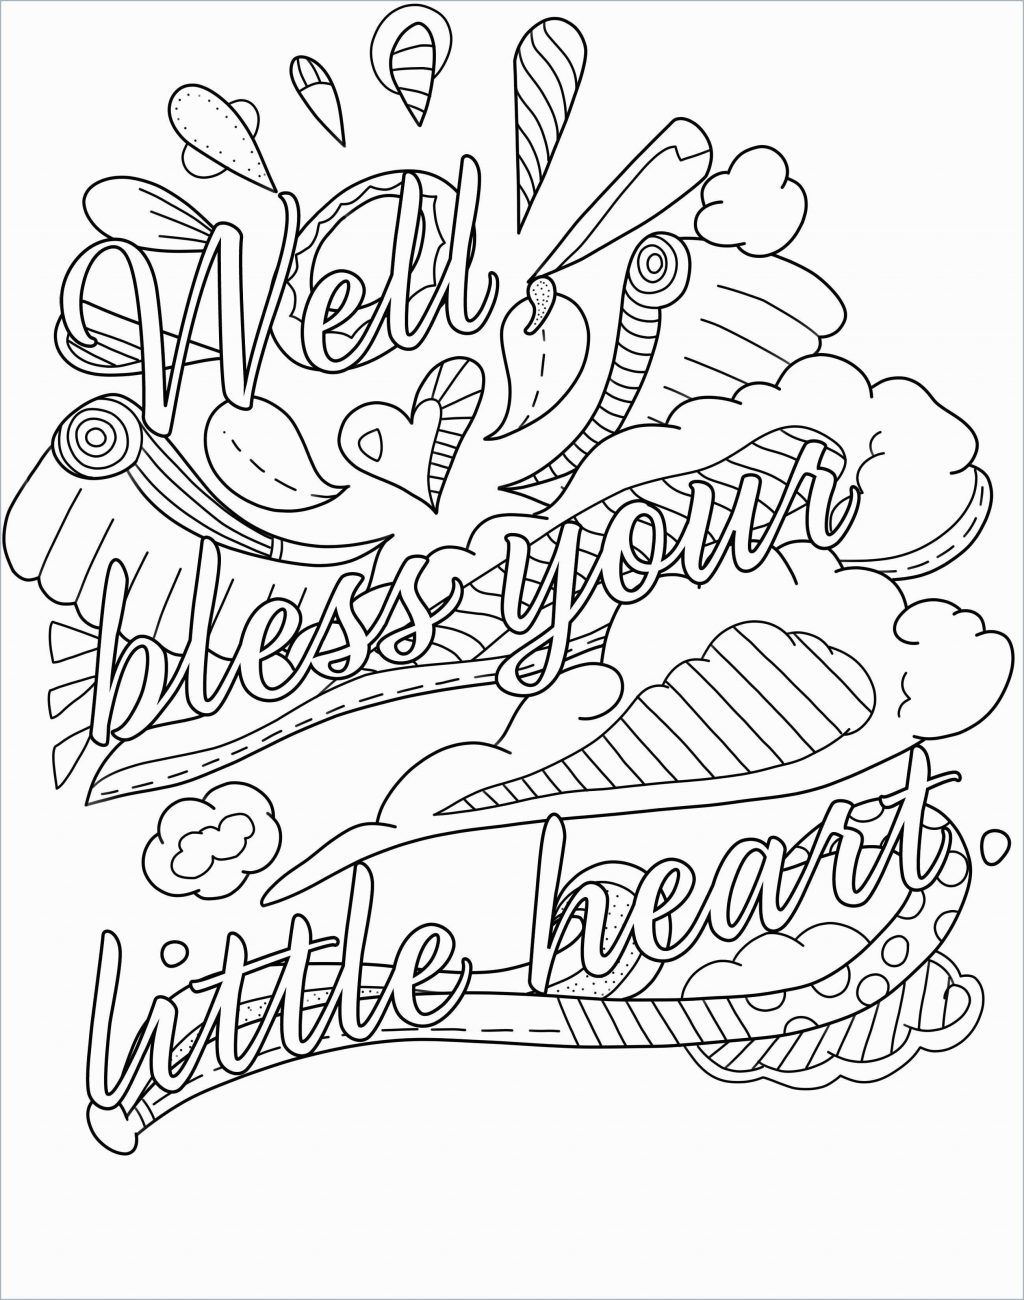 Coloring Pages ~ Word Coloring Pagesle Swearing Pleasant Page The